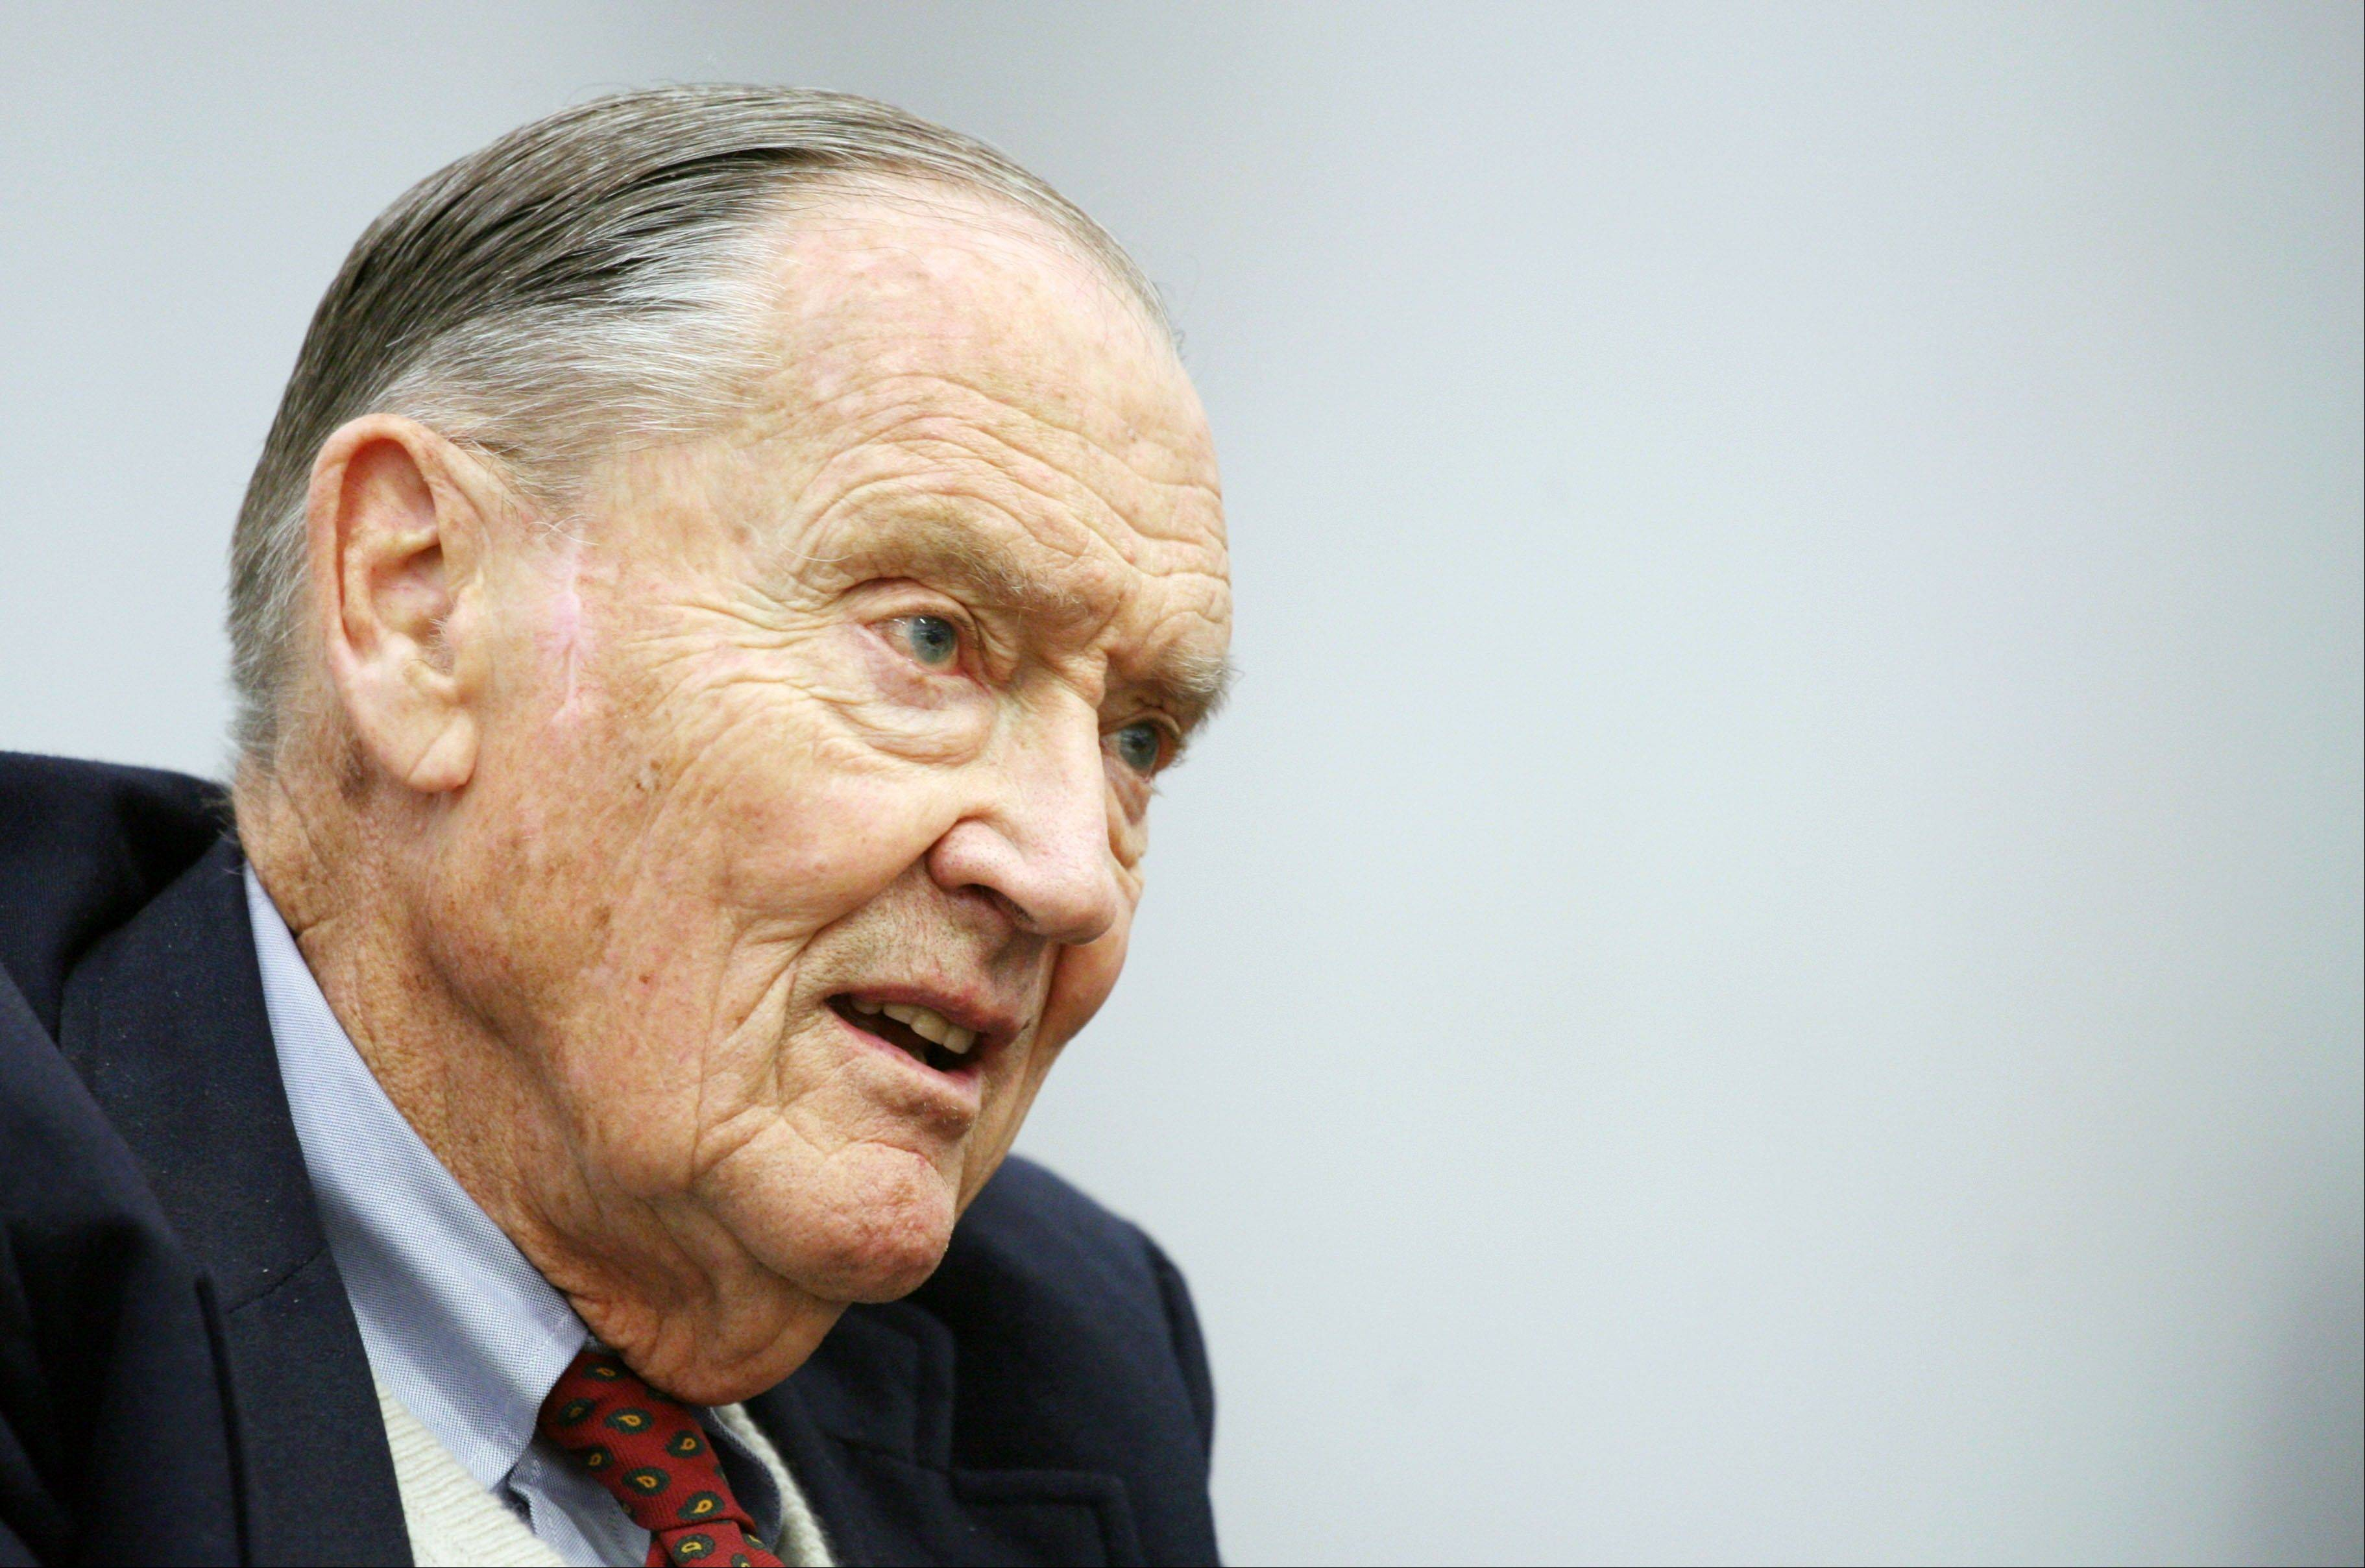 John C. 'Jack' Bogle is 83 and outspoken. Over the years, the Vanguard Group founder has frequently criticized the mutual fund industry that he helped nurture. Before retirement, Bogle challenged the industry status quo in the 1970s when Vanguard introduced the first low-cost index funds.